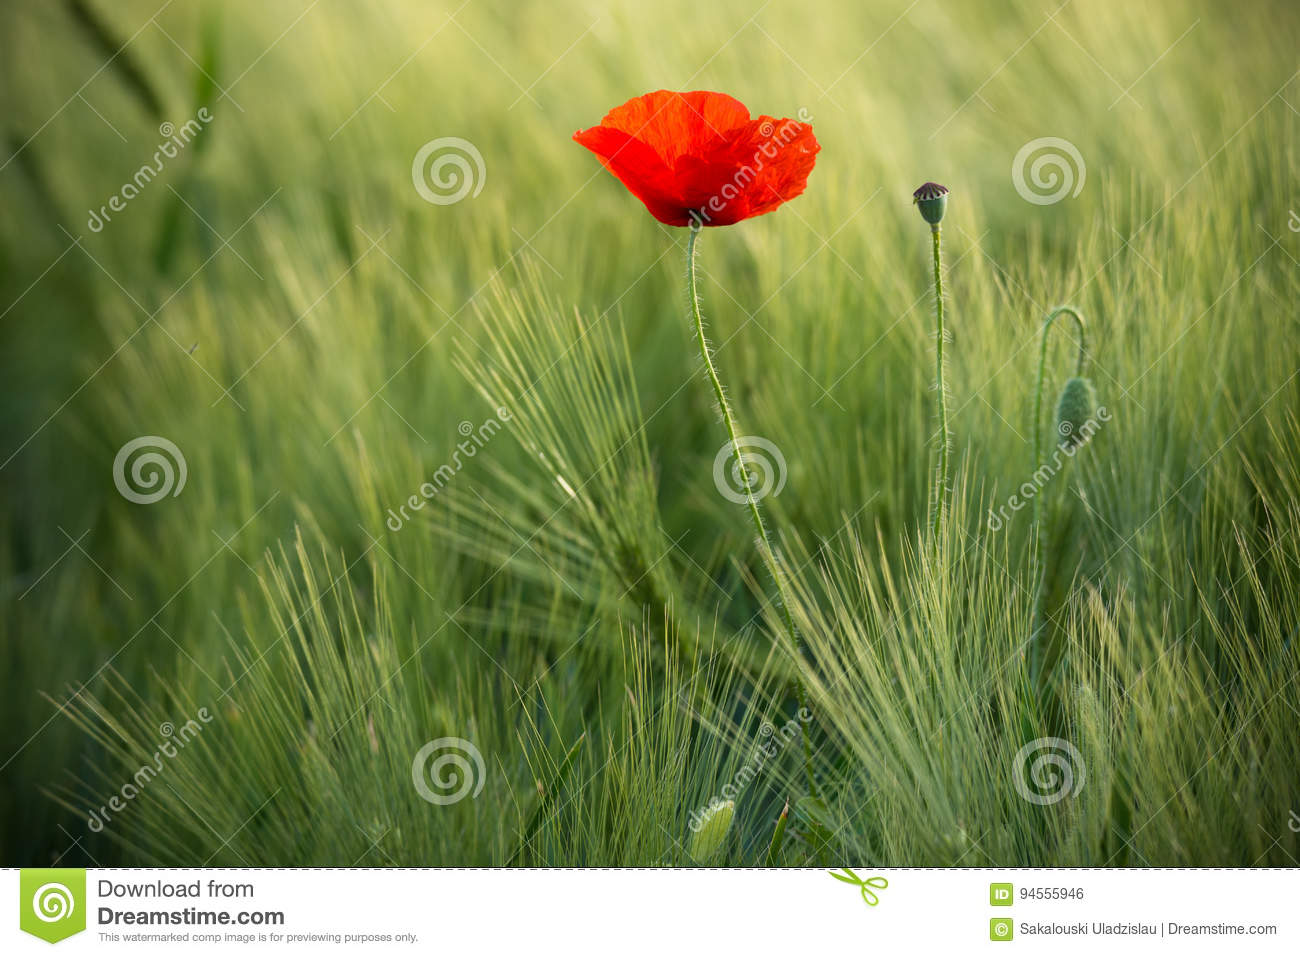 Wild Red Poppy, Shot With A Shallow Depth Of Focus, On A Green Wheat Field In The Sun. Lonely Red Poppy Close-Up Among Wheat. Pict